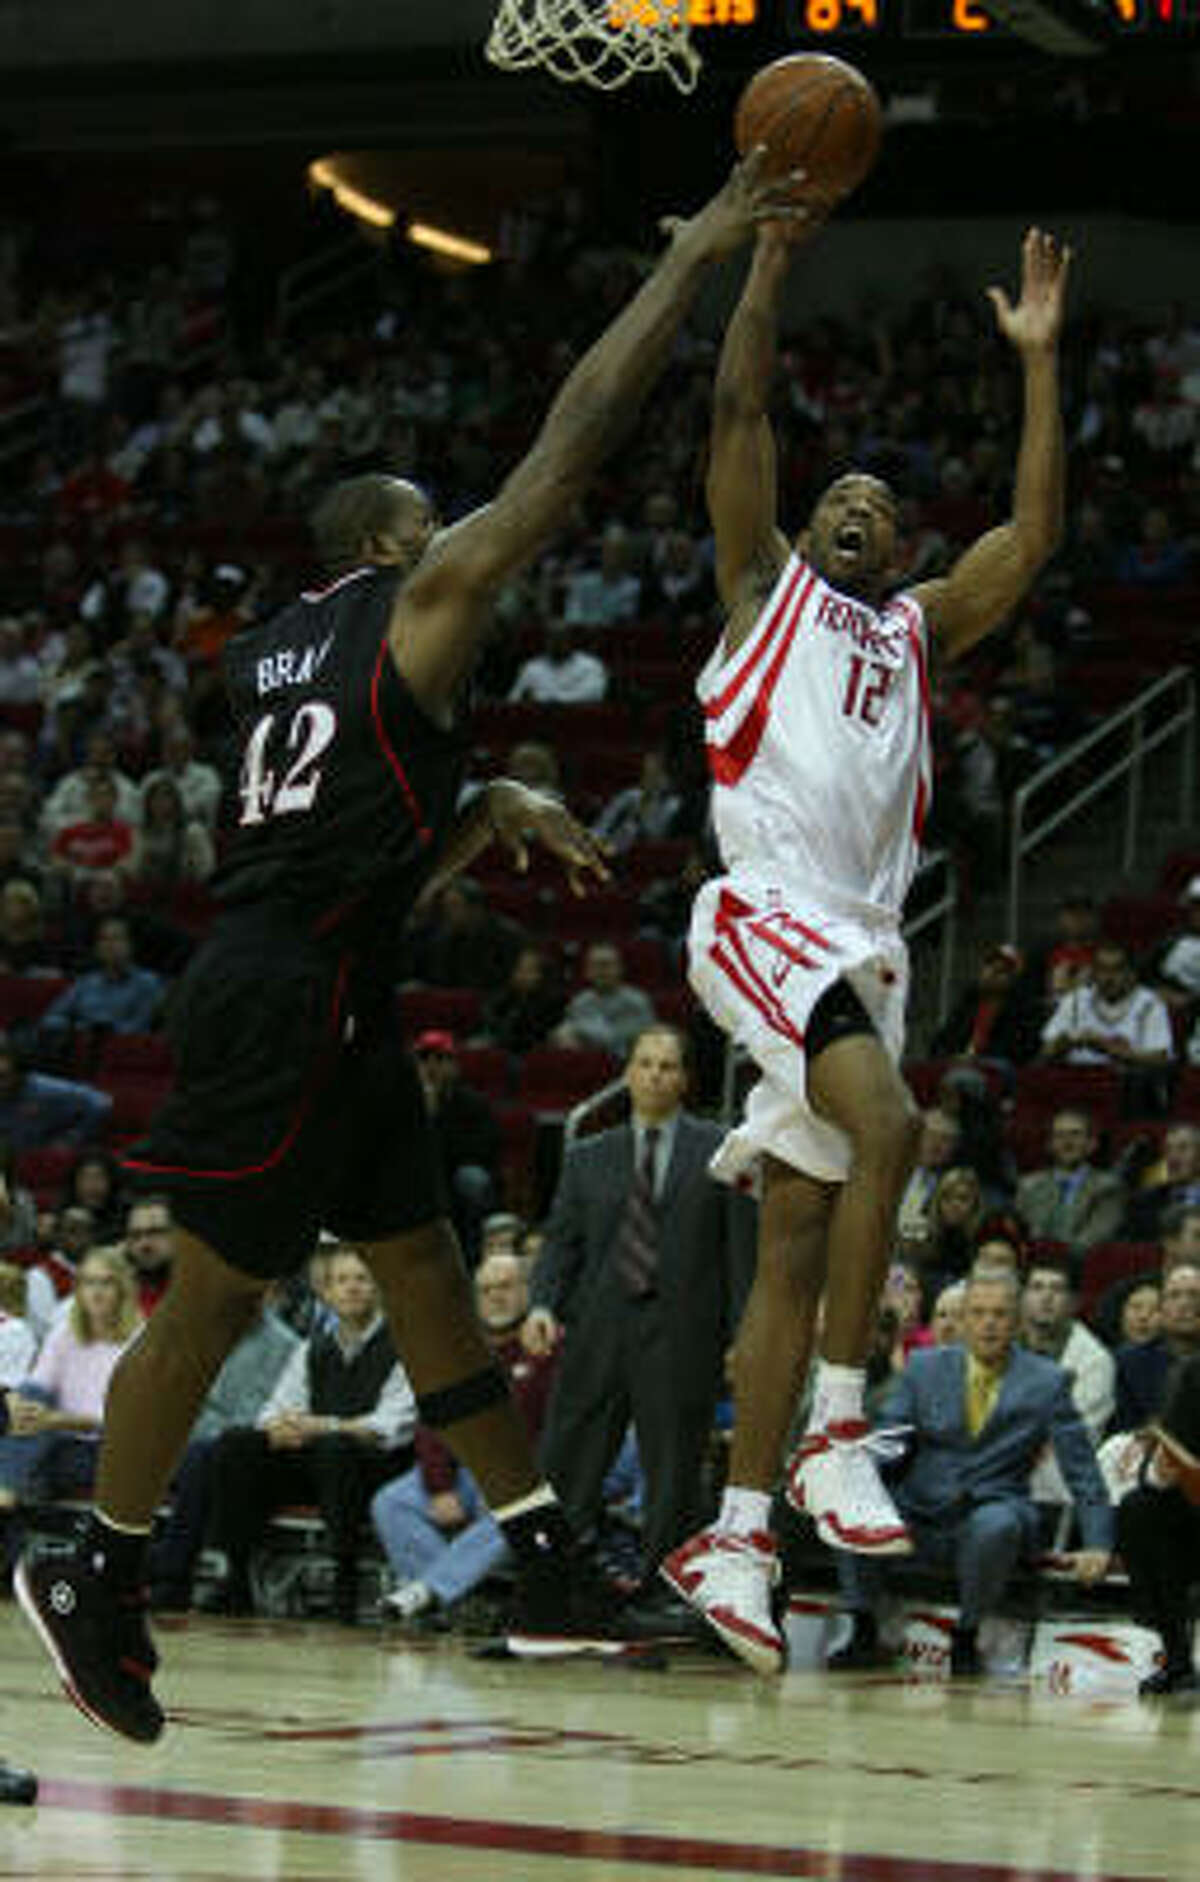 76ers forward Elton Brand, left, attempts to block a shot Rafer Alston during the second half.